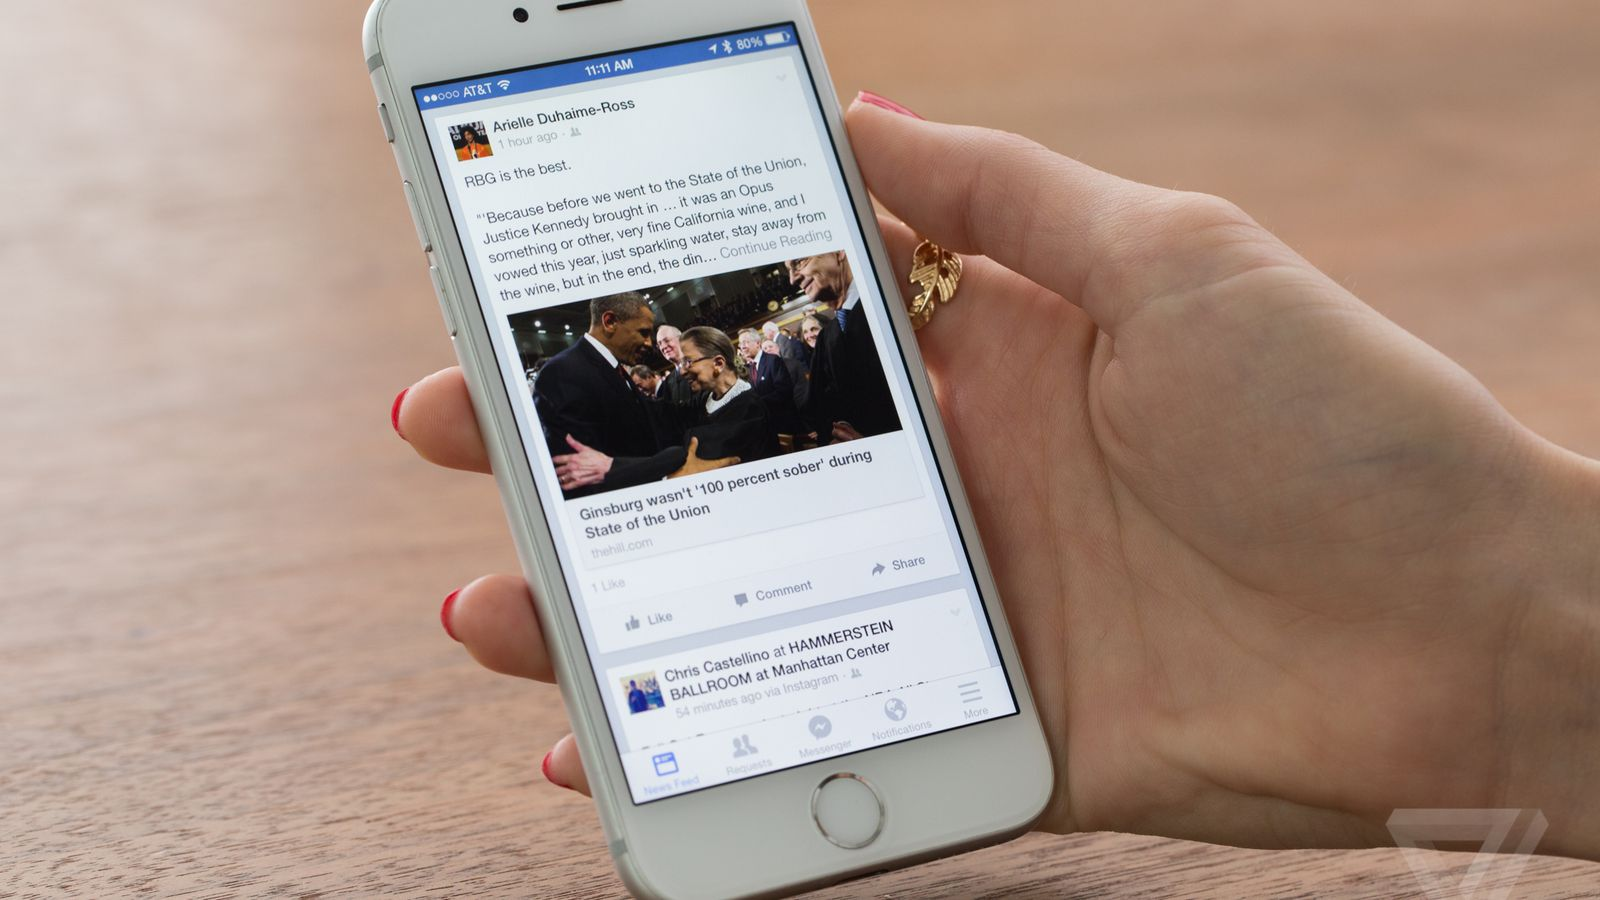 Facebook rolls out fake news filter in Germany